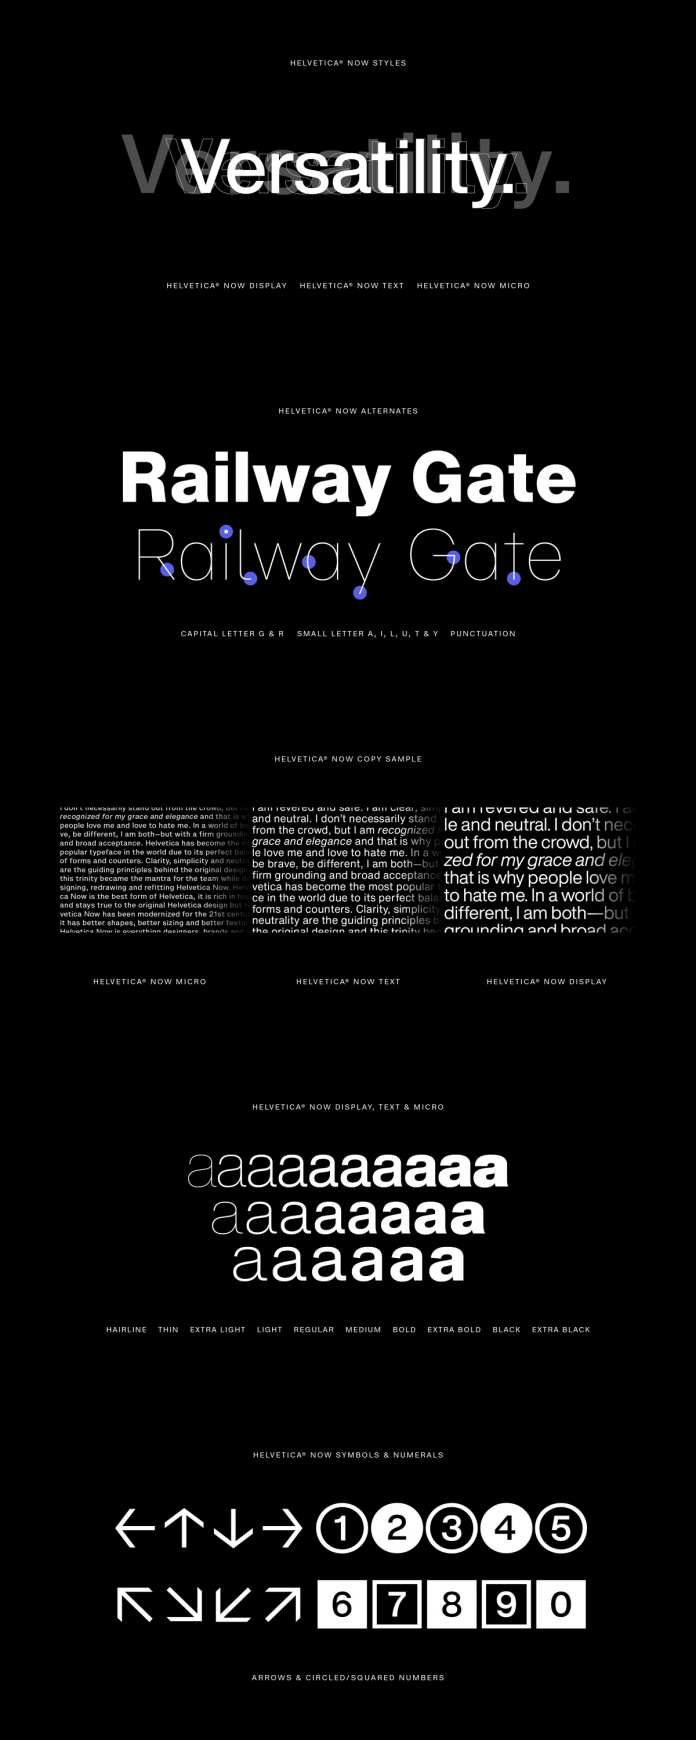 Helvetica Now from Monotype